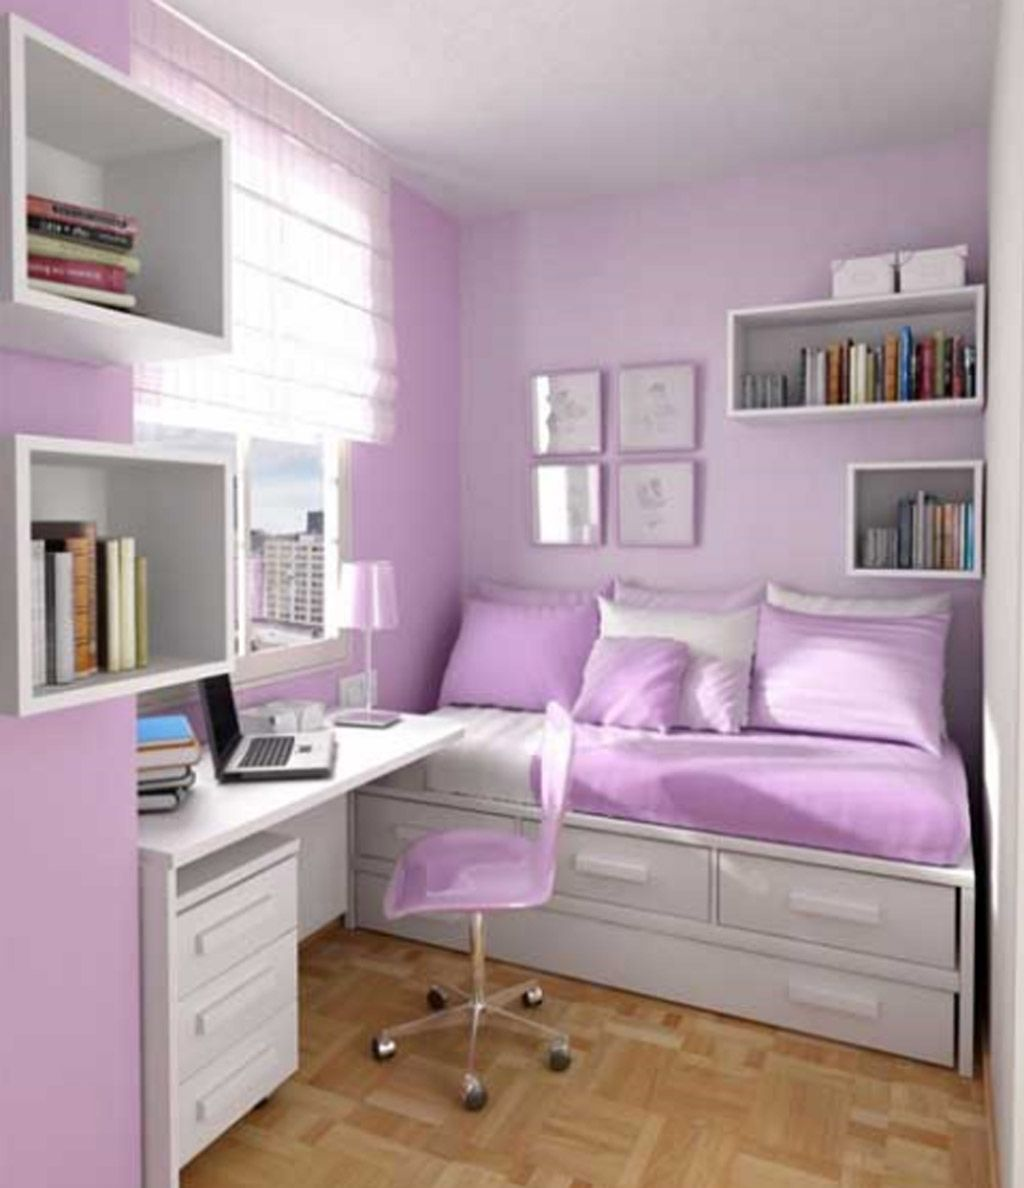 Teenage Bedrooms decor for teenage bedrooms | room decorating ideas, light purple